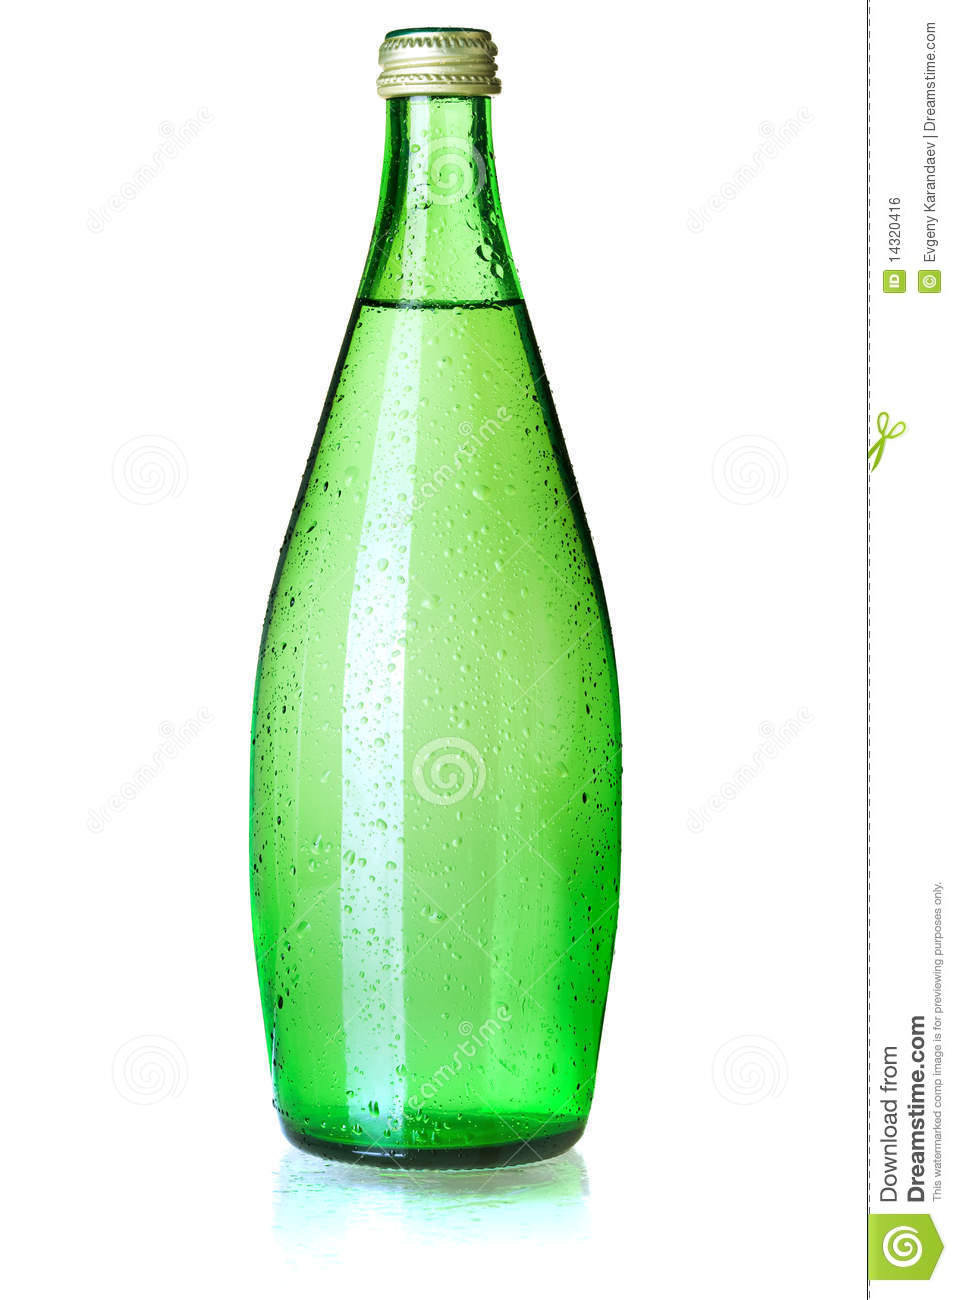 Glass Bottle Of Soda Water Royalty Free Stock Image - Image: 14320416